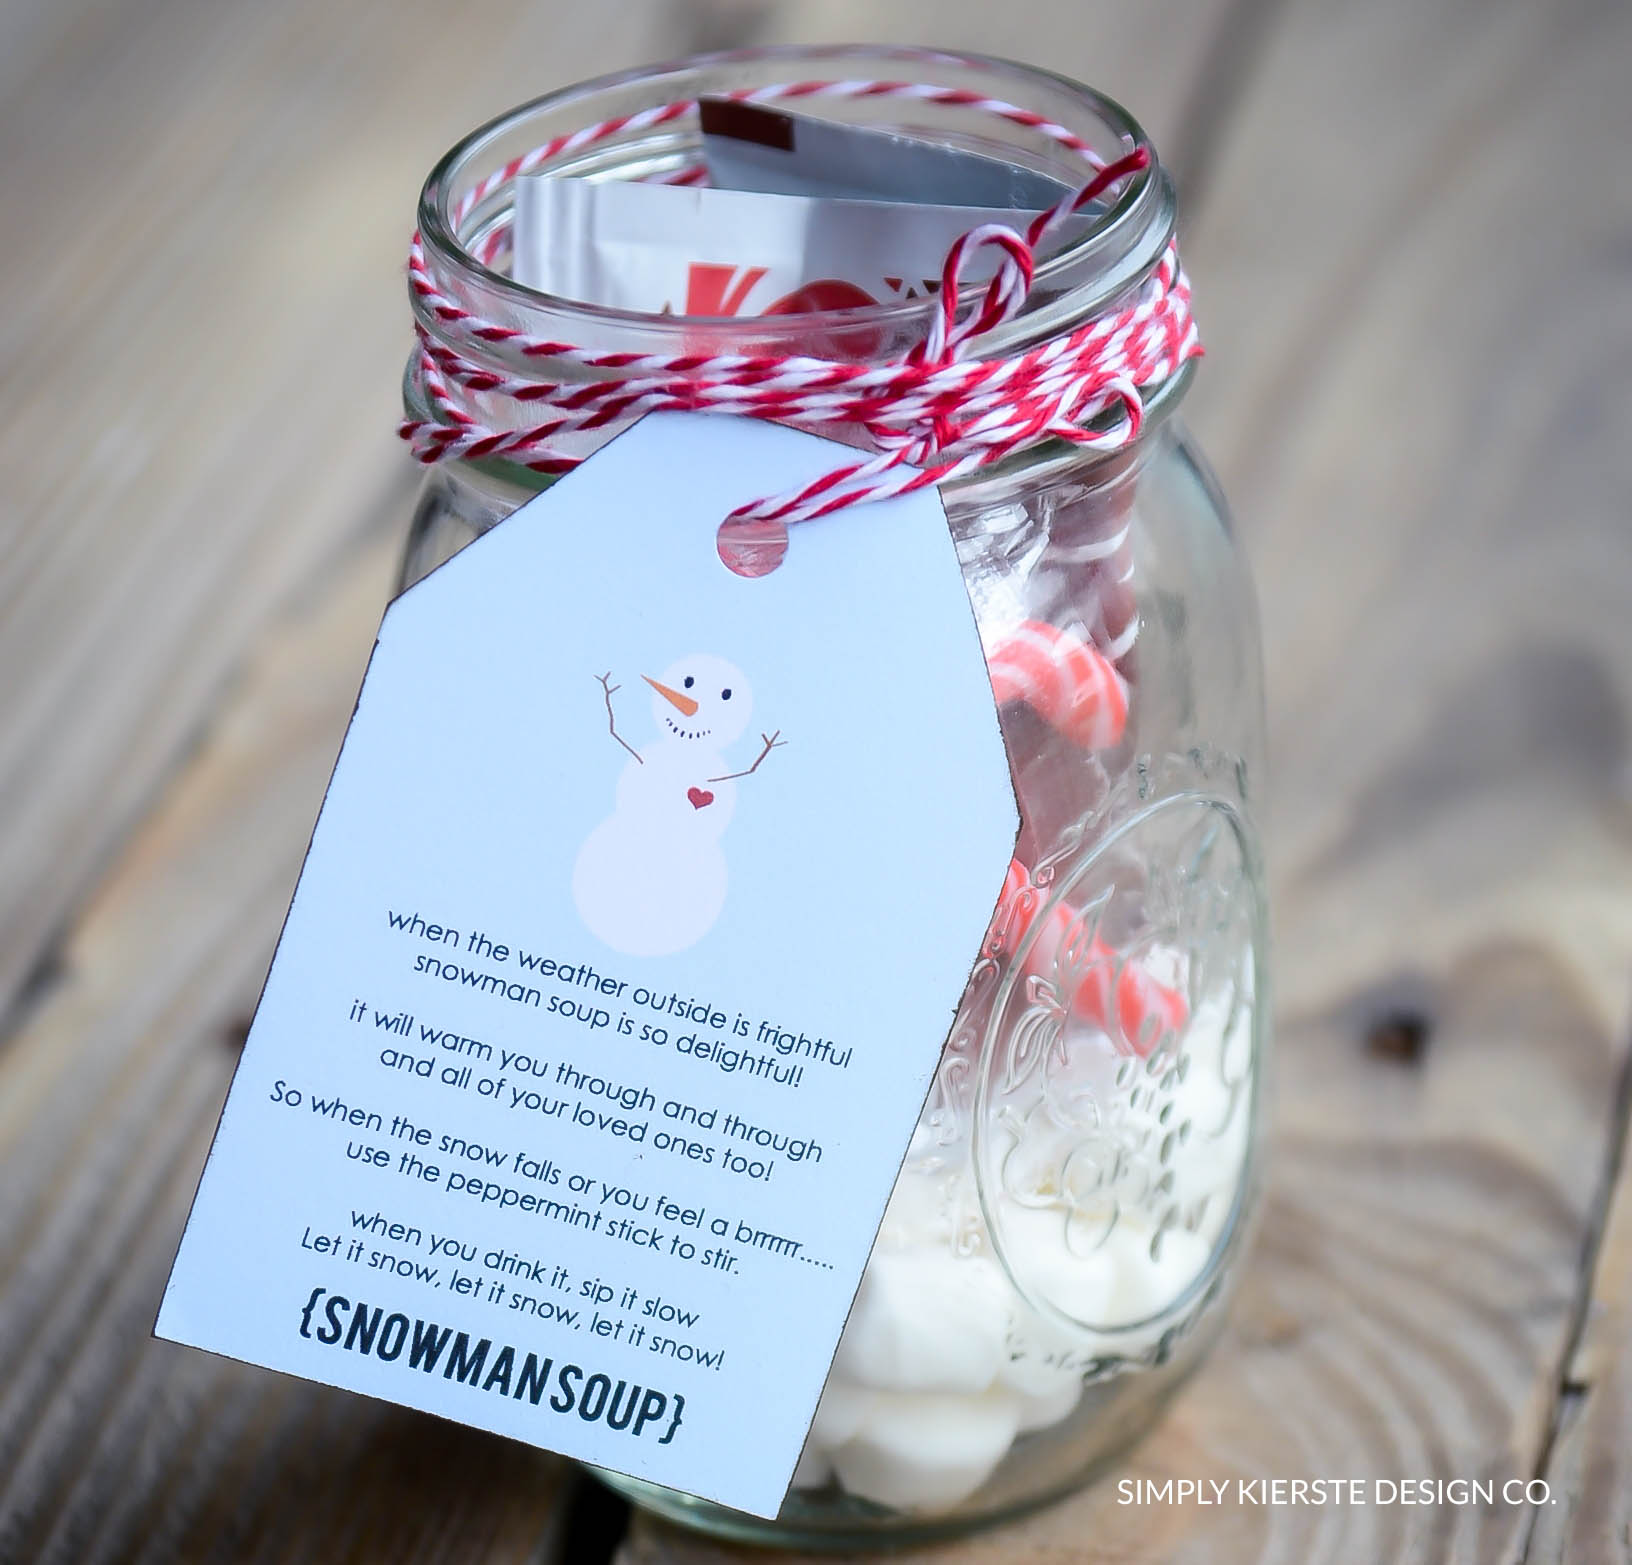 Snowman Soup | Christmas Gift Idea | Neighbor Gift Idea | simplykierste.com #neighborgifts #christmasgifts #easychristmasgifts